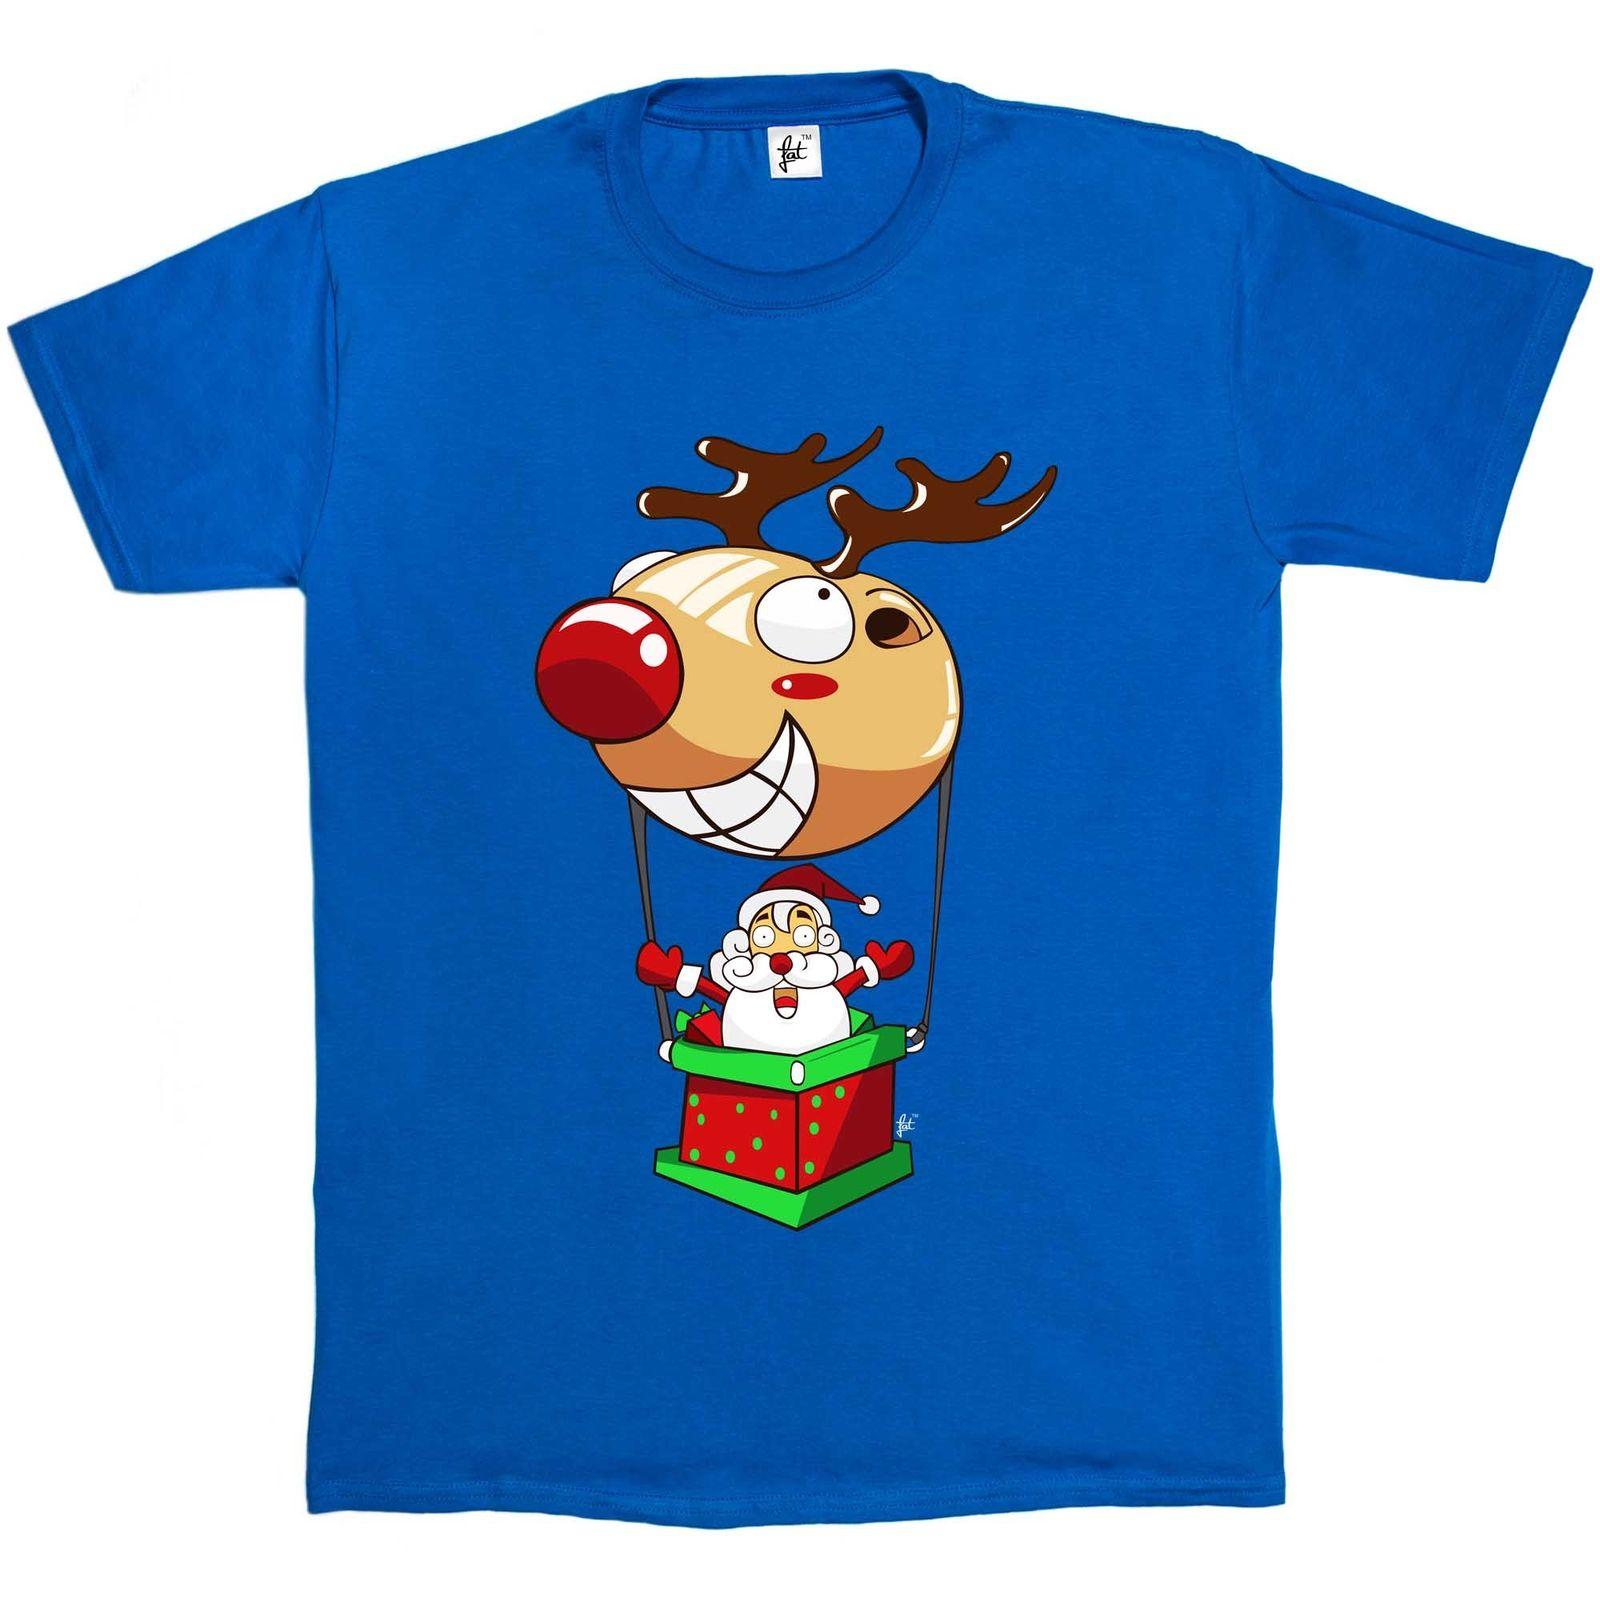 4ea3110bc Santa Flying In Red Nose Reindeer Hot Air Balloon Christmas Xmas Mens T  Shirt Size Discout Hot New Tshirt Top T Shirt Go T Shirts Really Funny  Shirts From ...